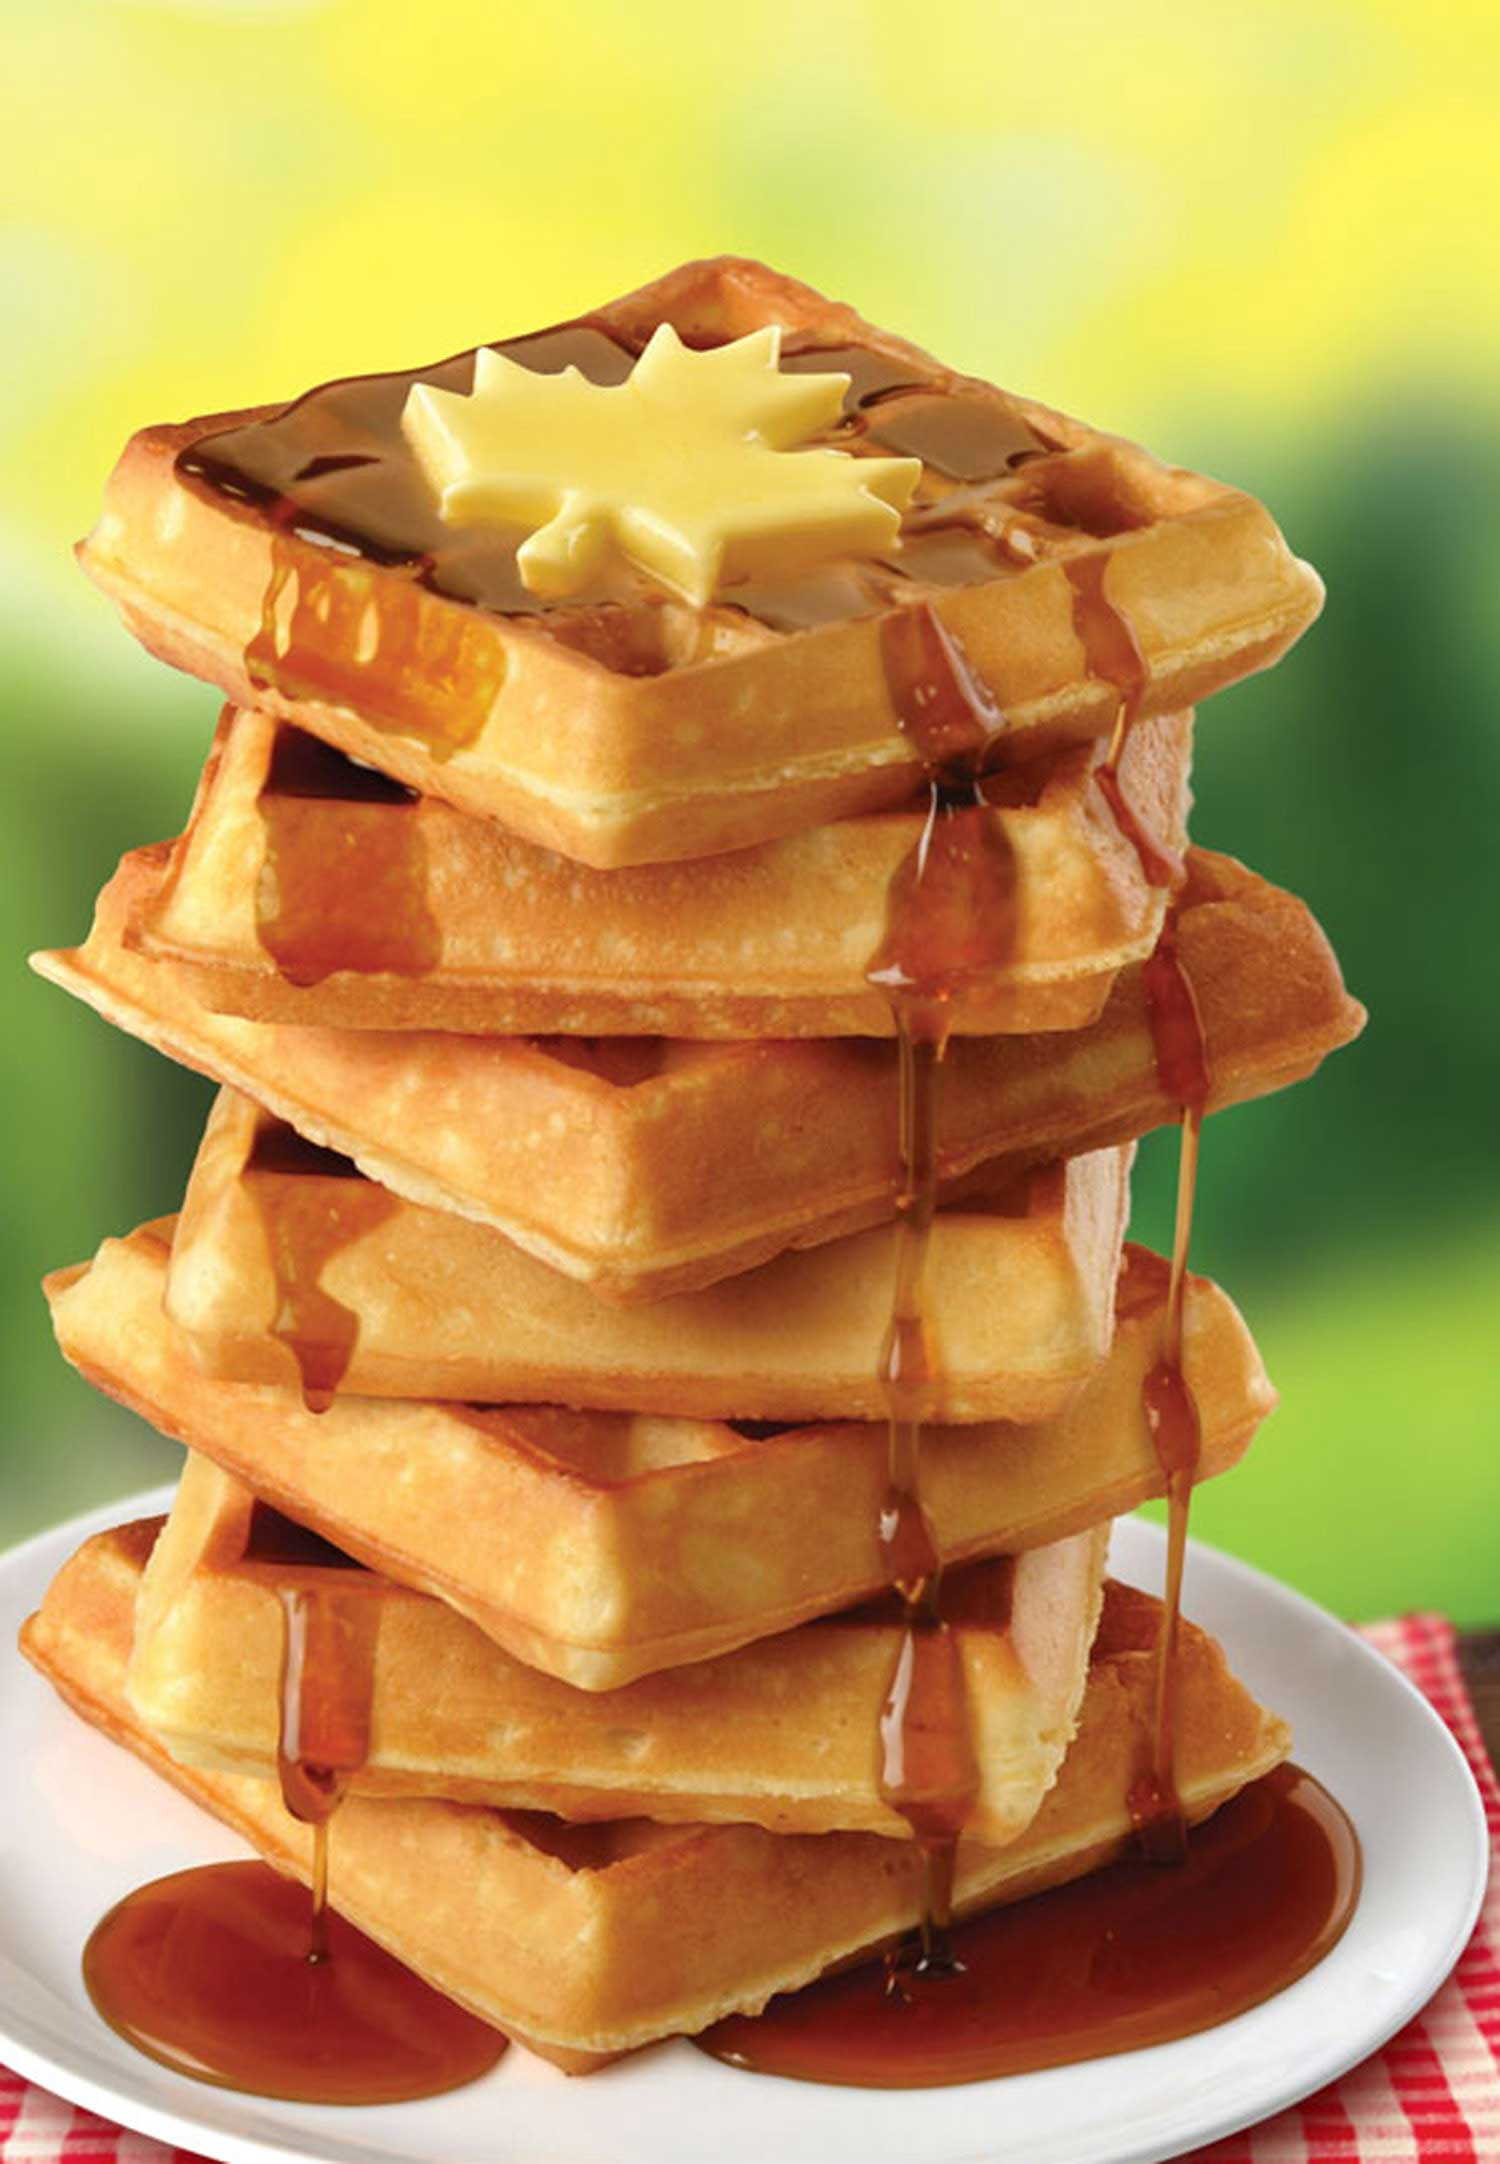 mike wepplo photoreal photography waffle stack with maple syrup drizzle